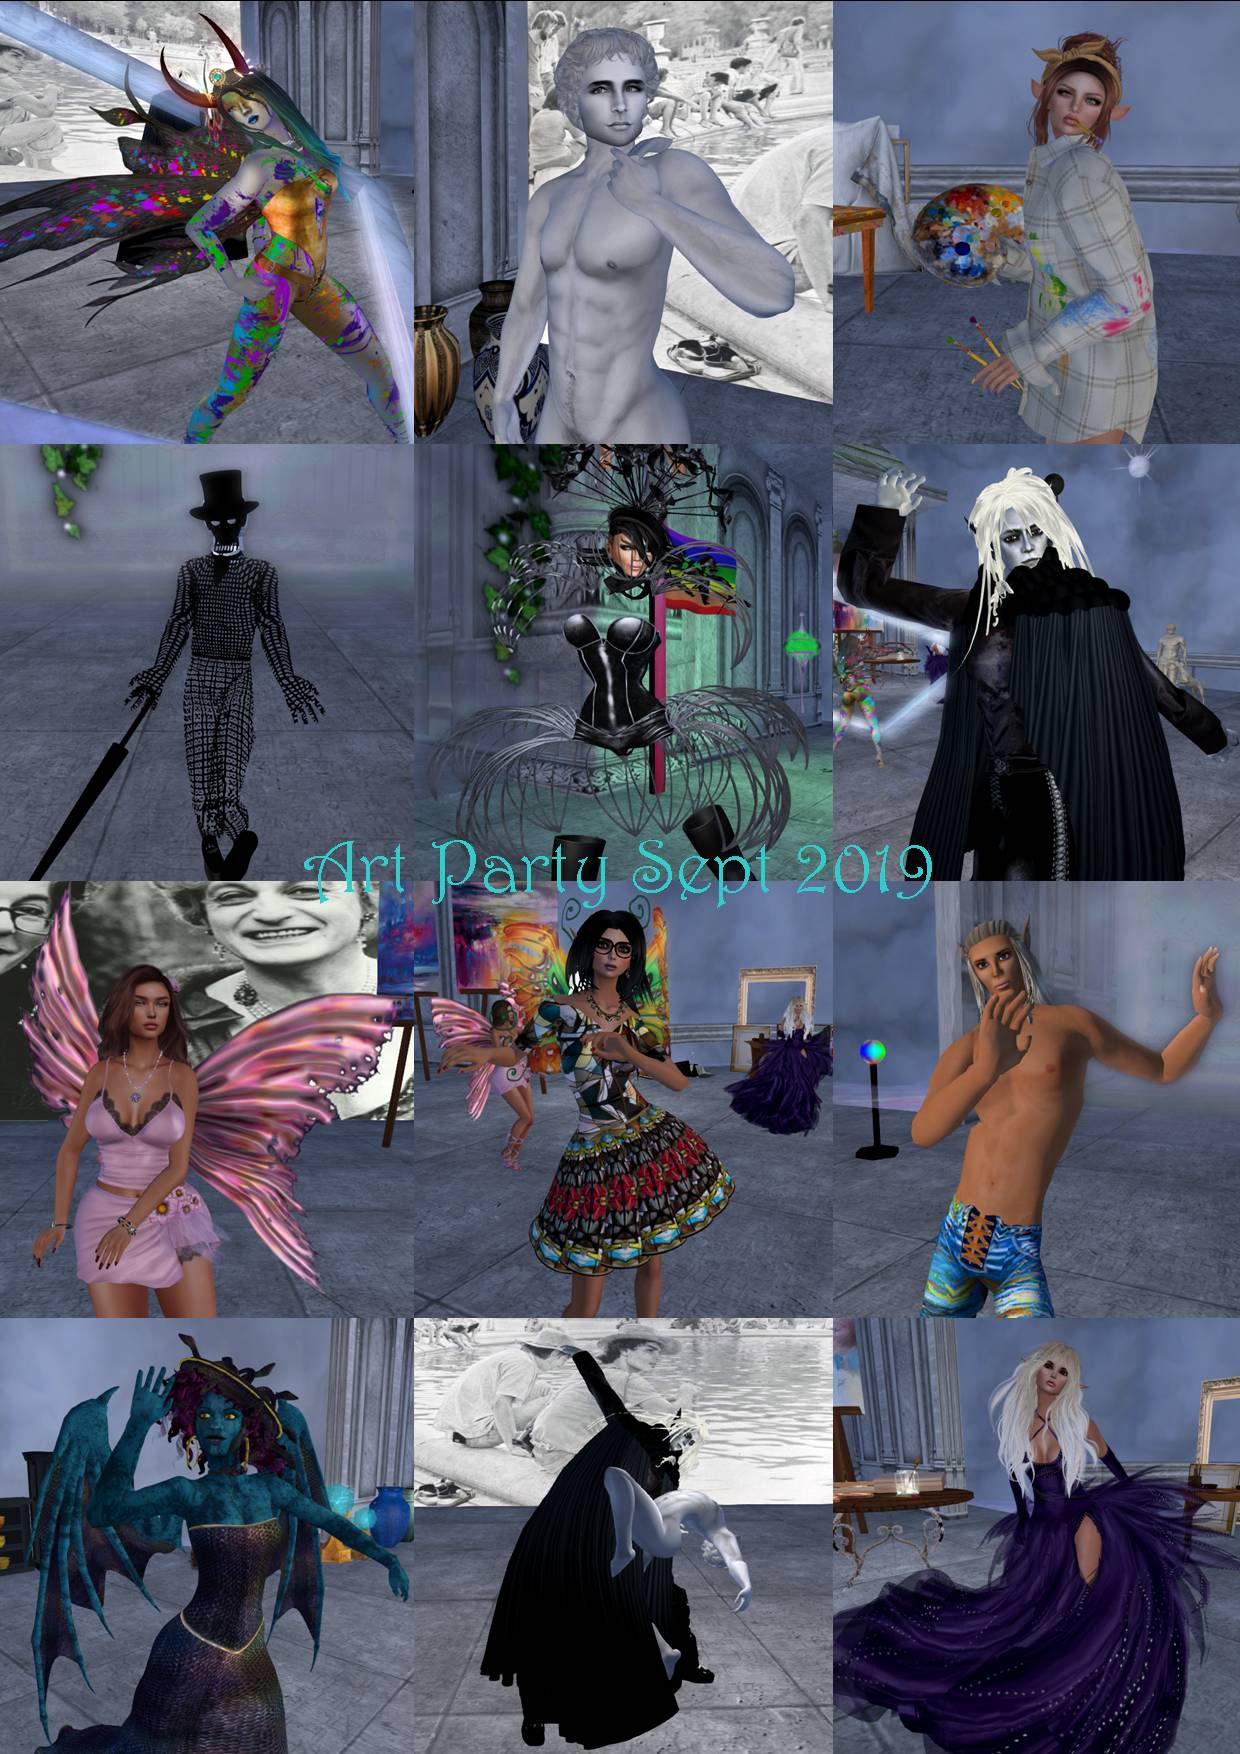 ART PARTY COLLAGE SEPT 2019